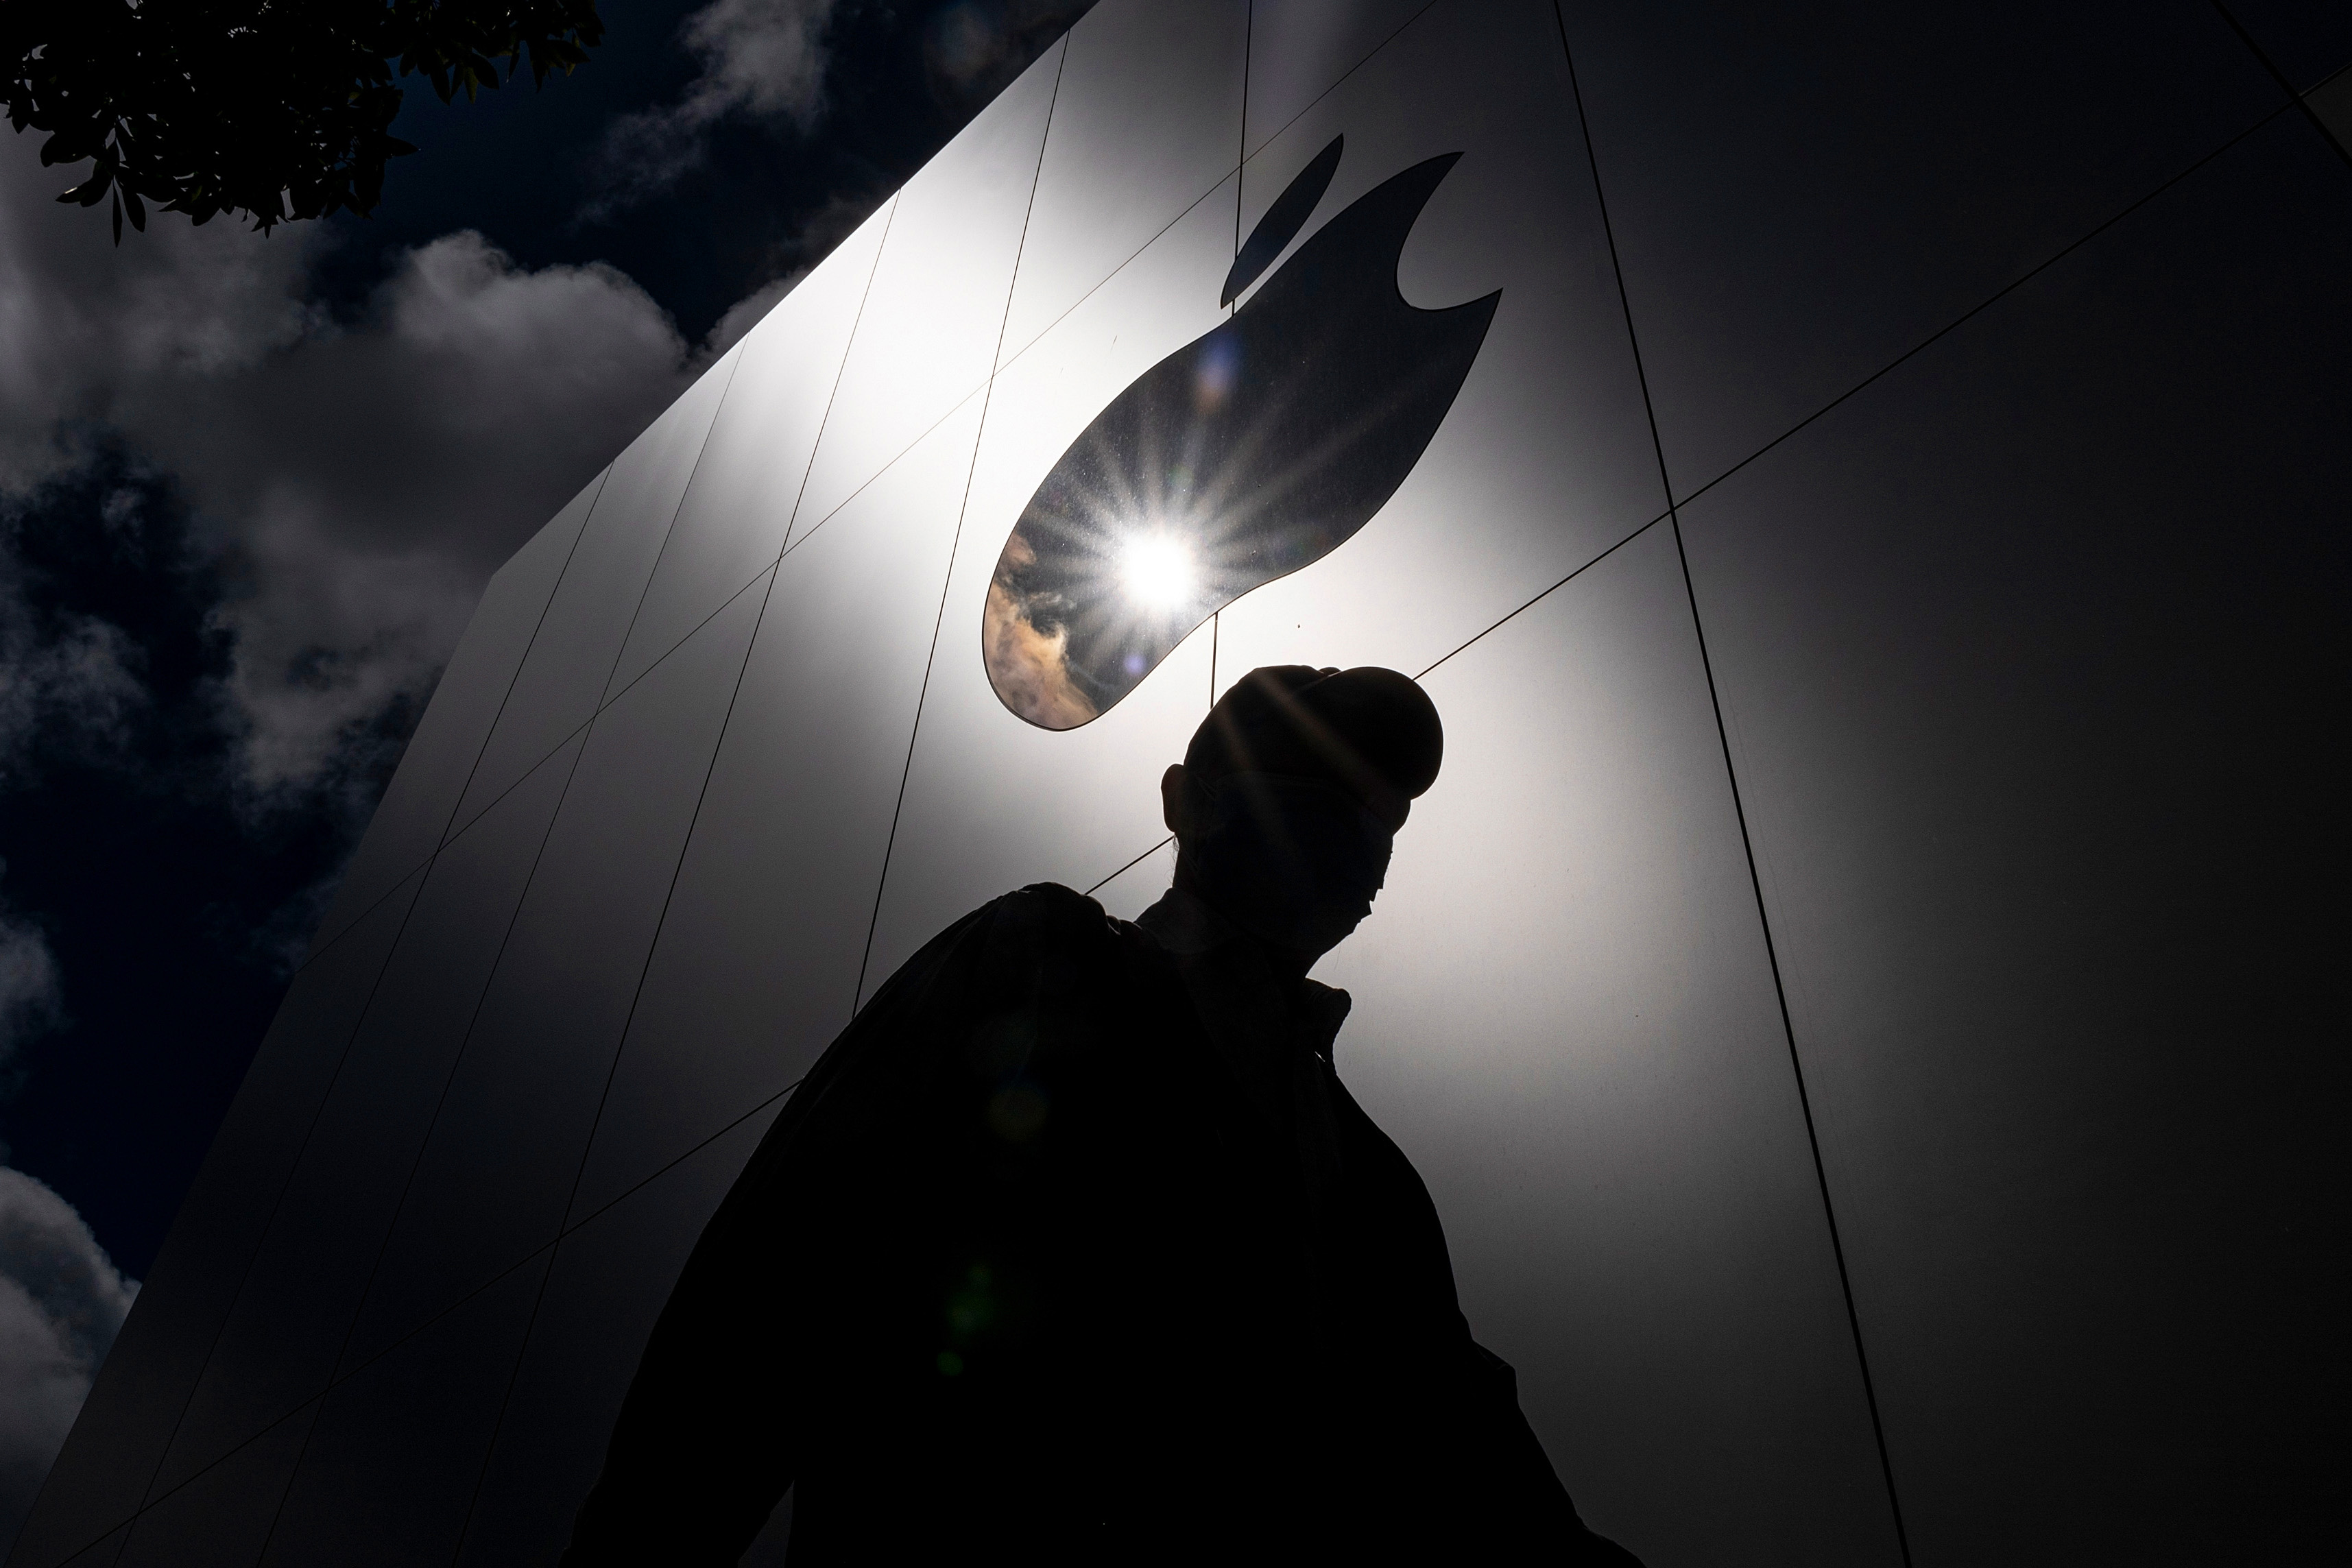 Update your iPhone: Spyware company using 'terrifying' hack, researchers say